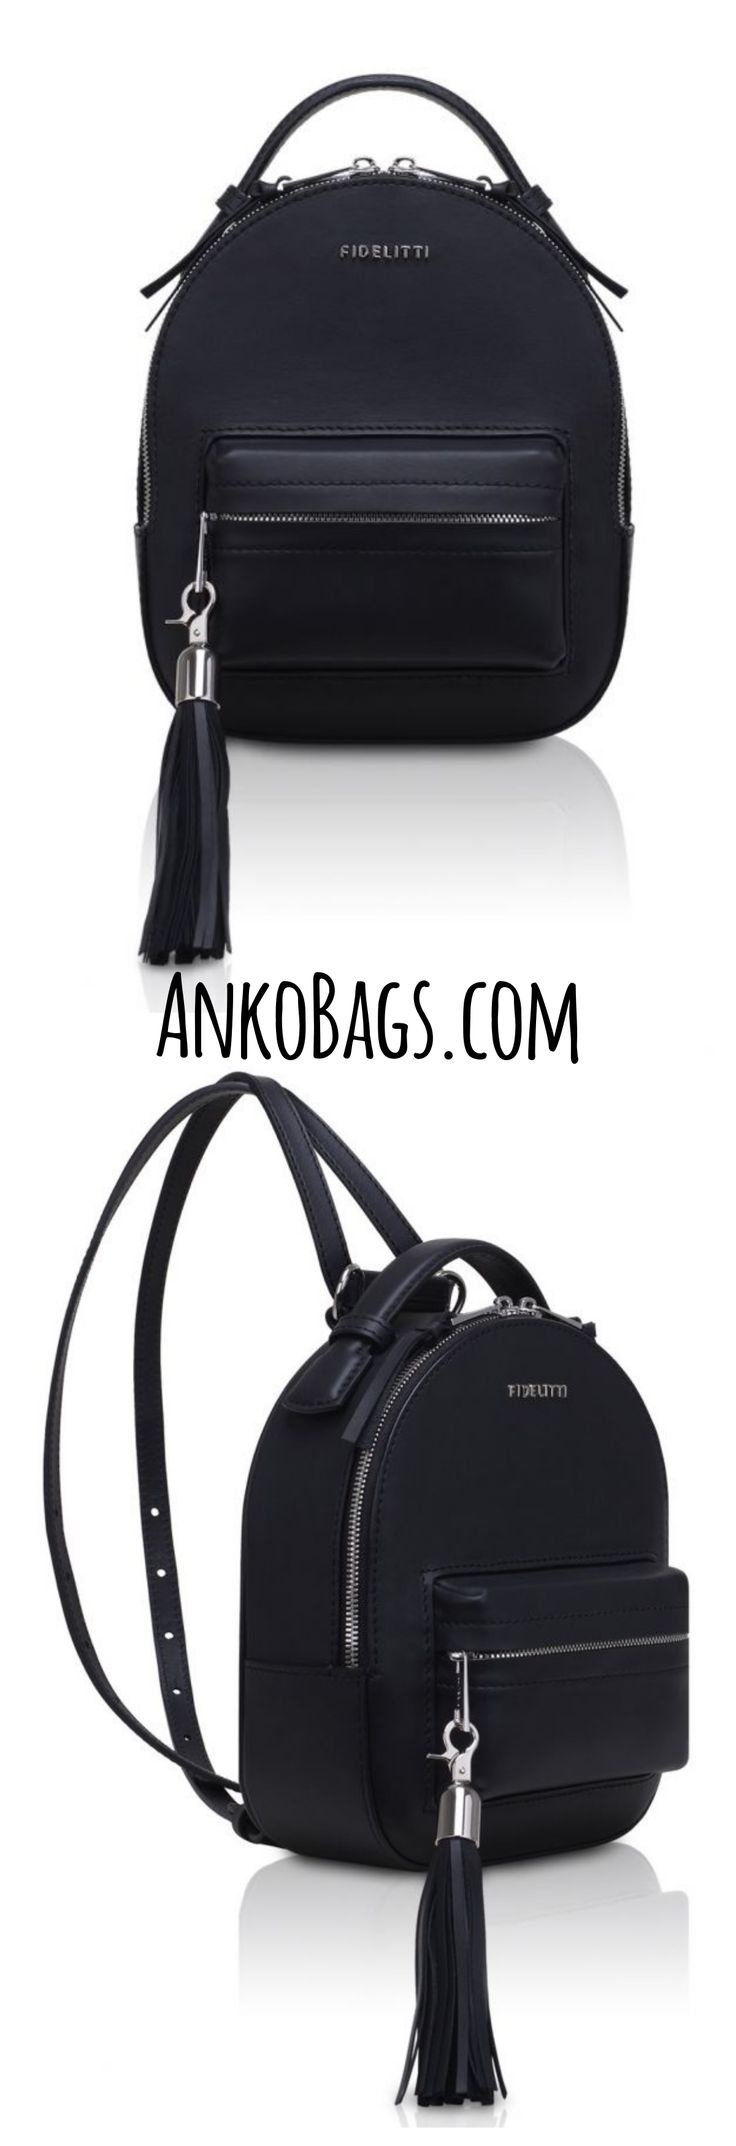 Discover Ankobags NEW Collection that's affordable & beautiful. FREE WORLDWIDE SHIPPING. Visit www.AnkoBags.com to view all our new arrivals...